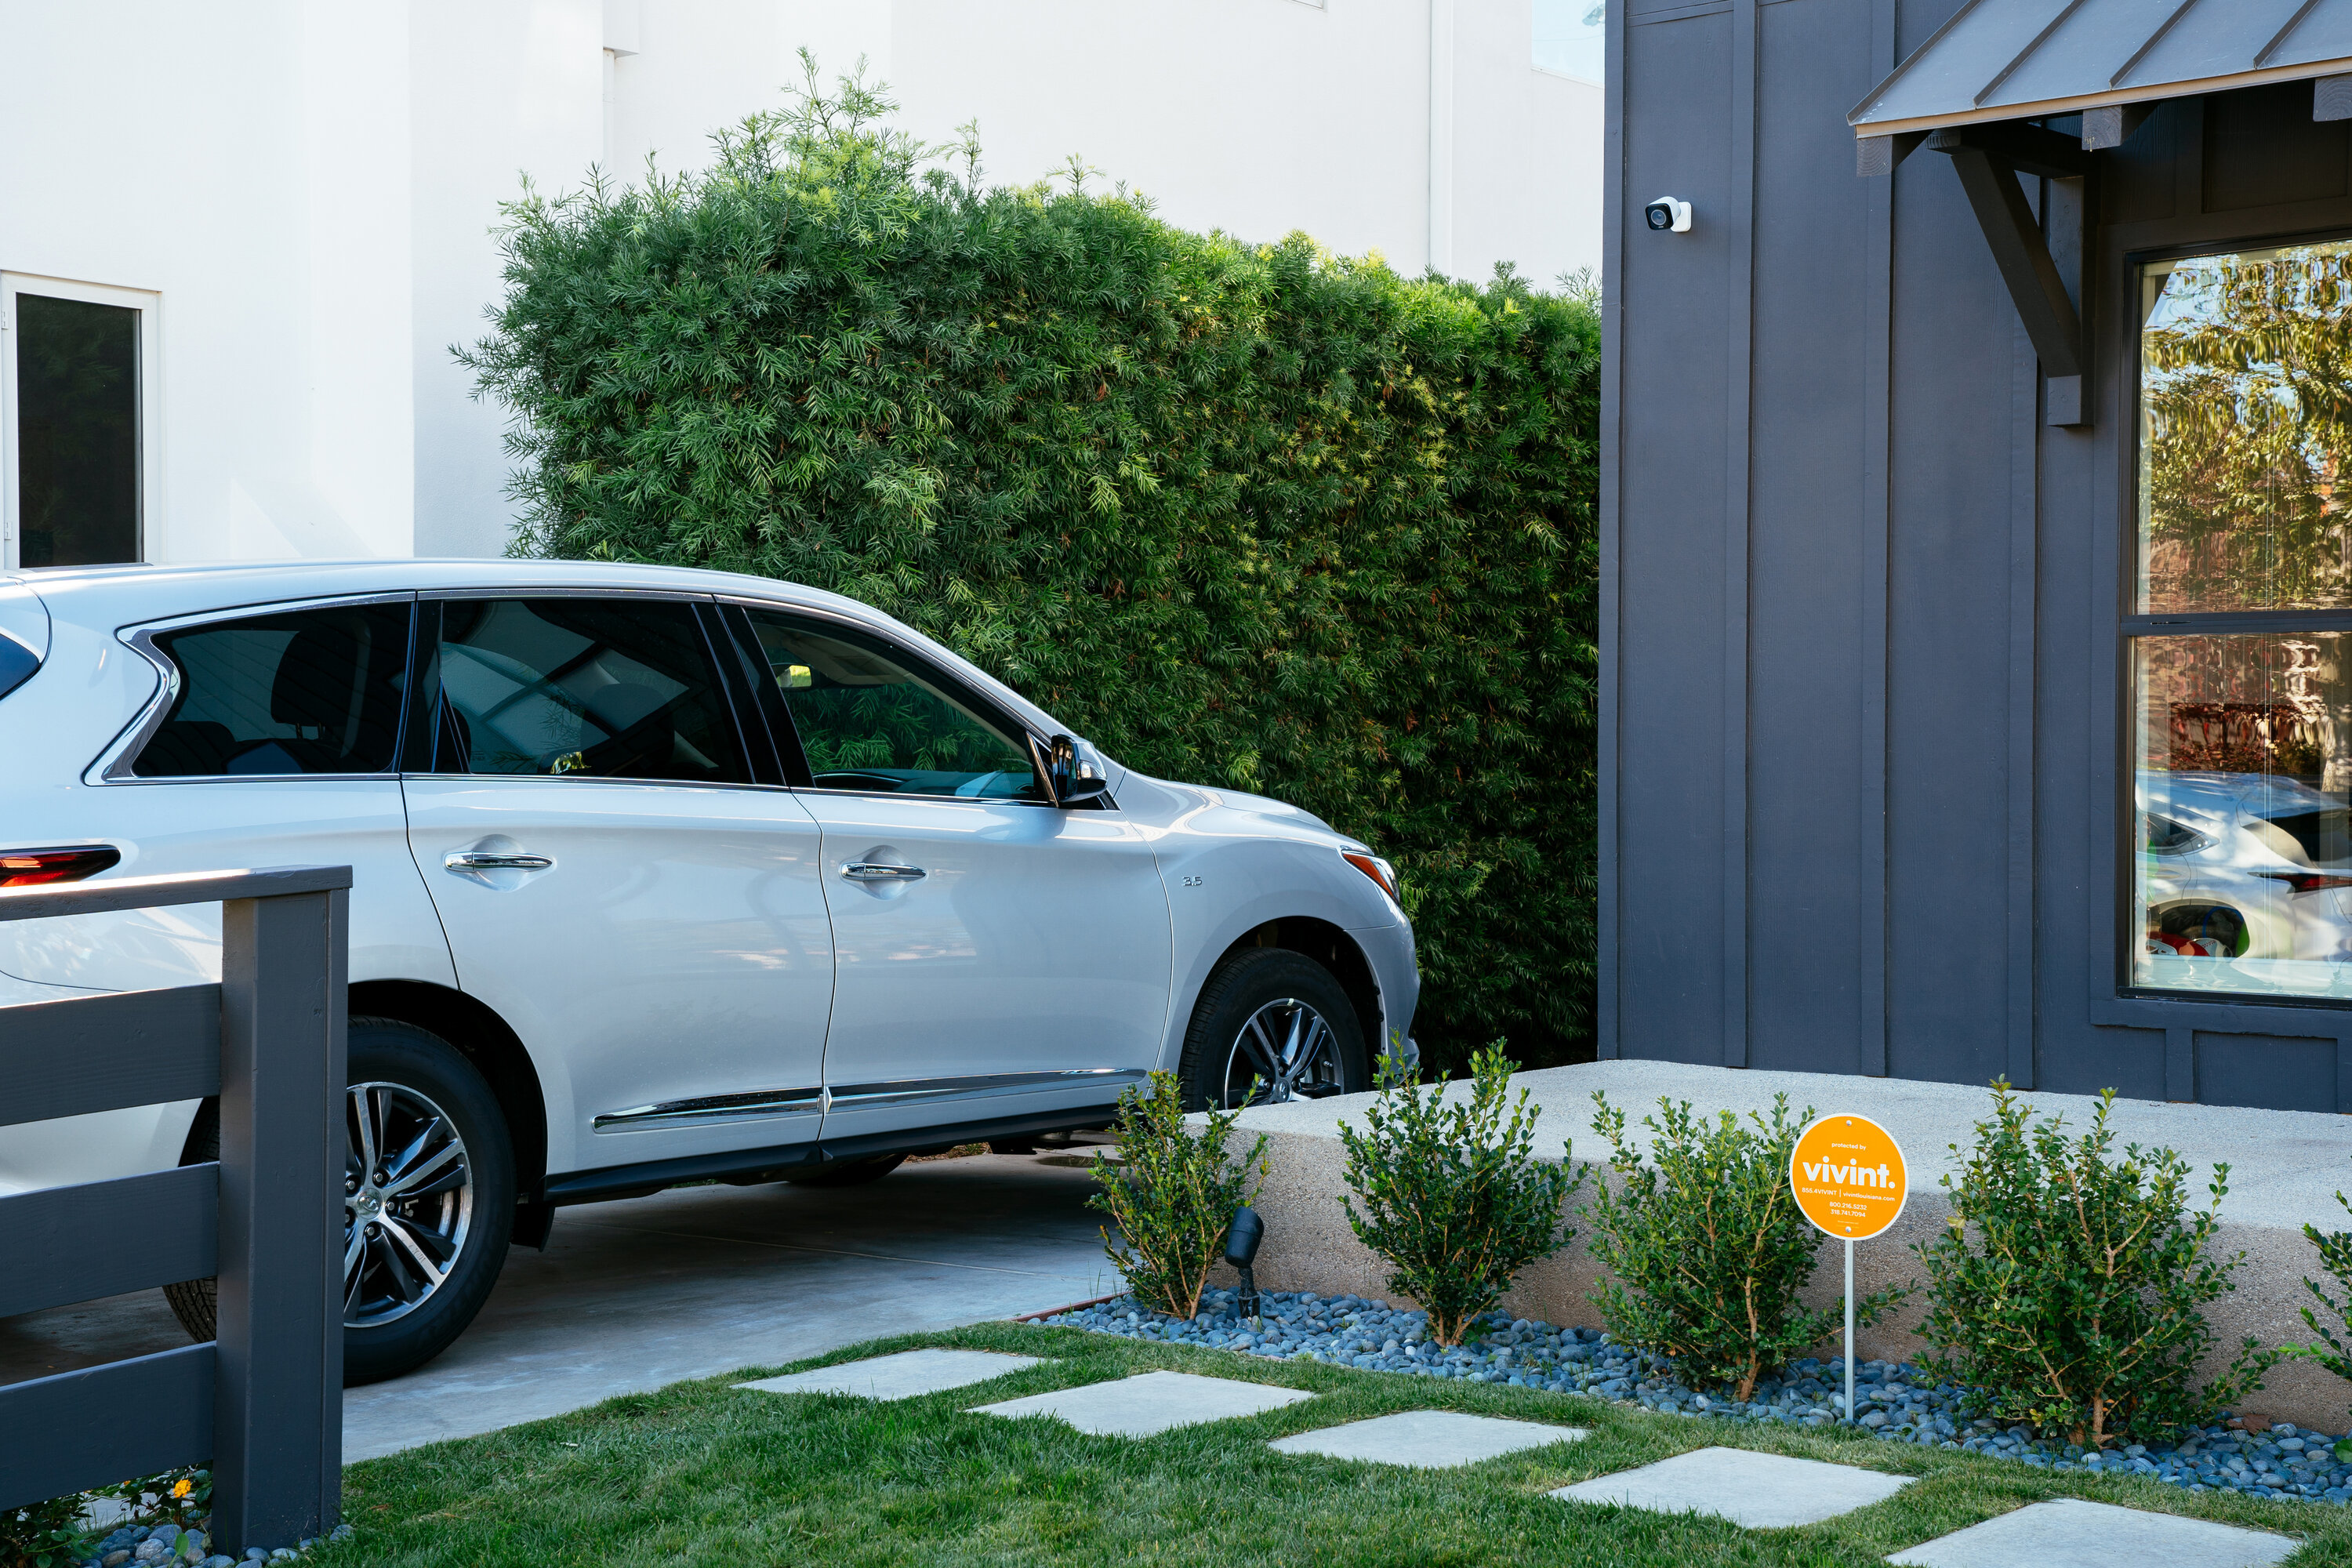 Edge of a home with a security camera, a Vivint sign in the front yard, and a car parked in the driveway